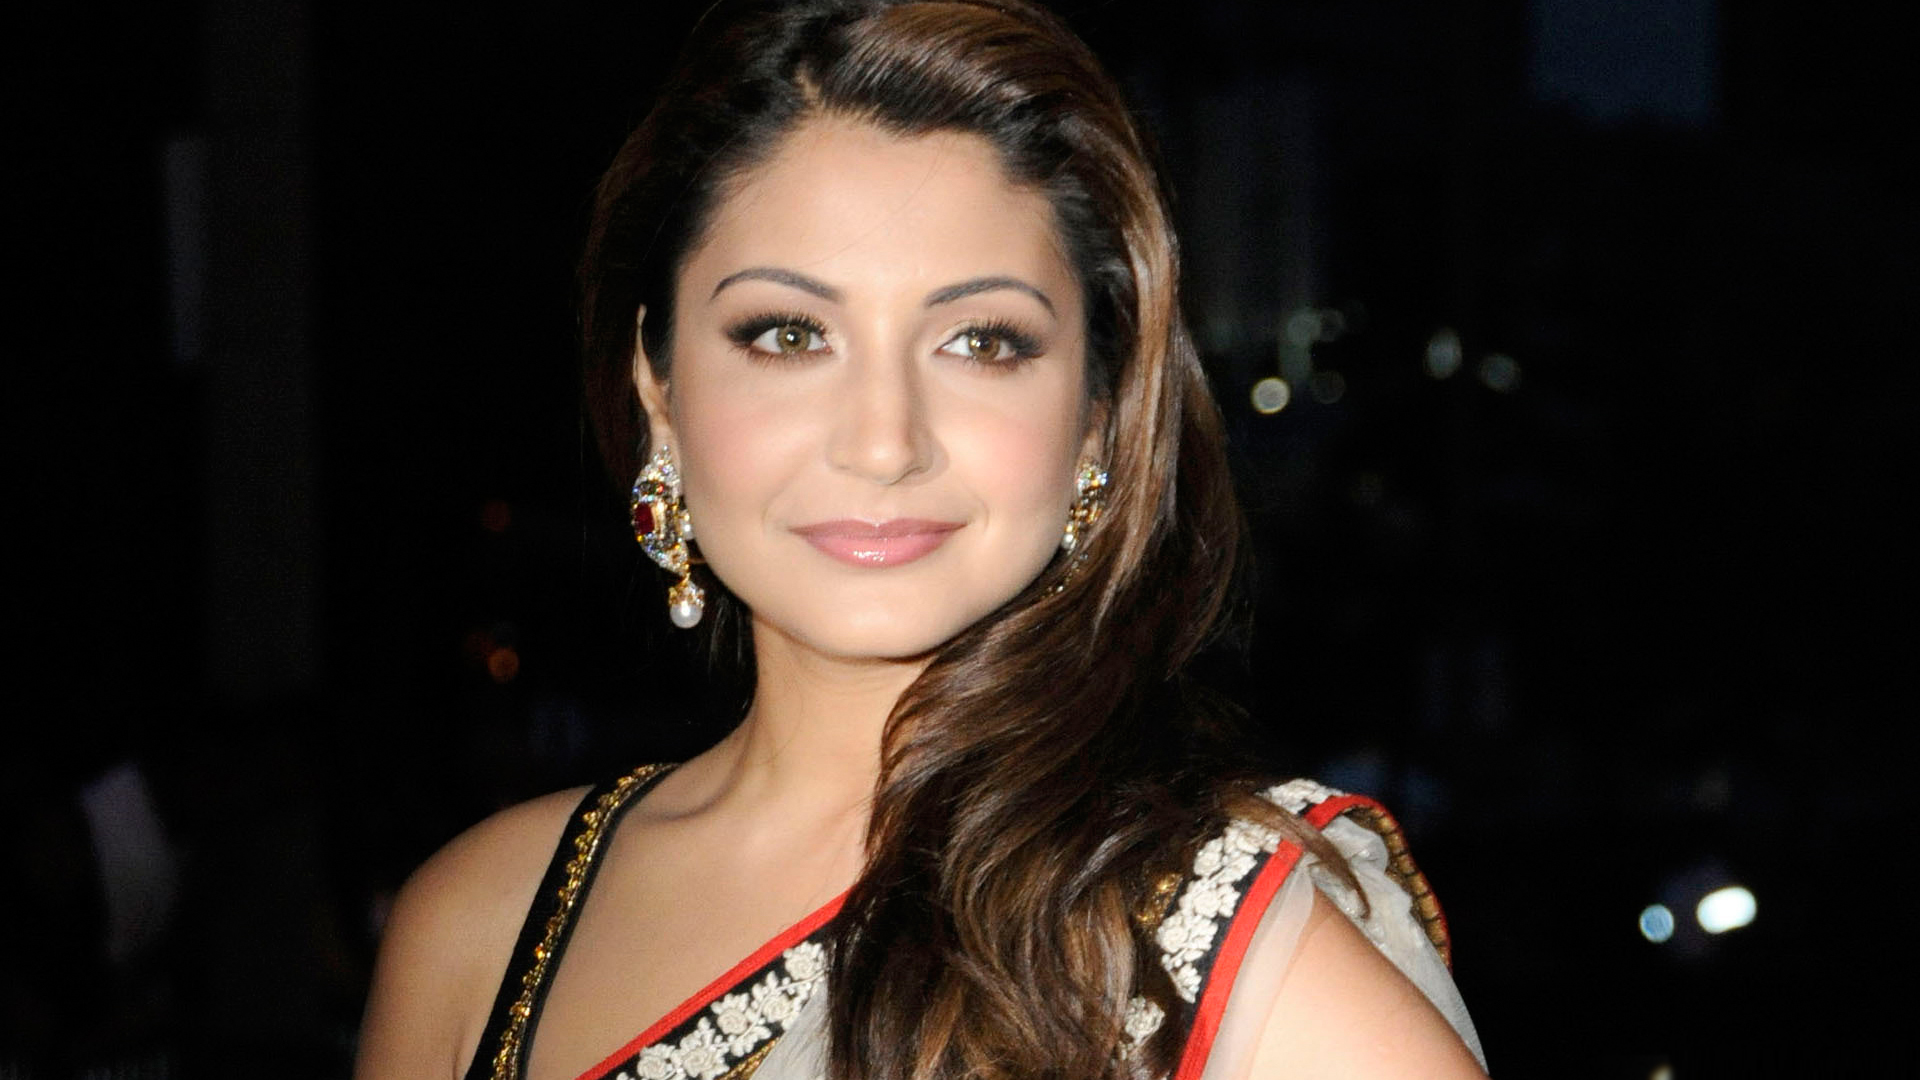 Reason why Anushka Sharma did only 8 films in her 7 year career